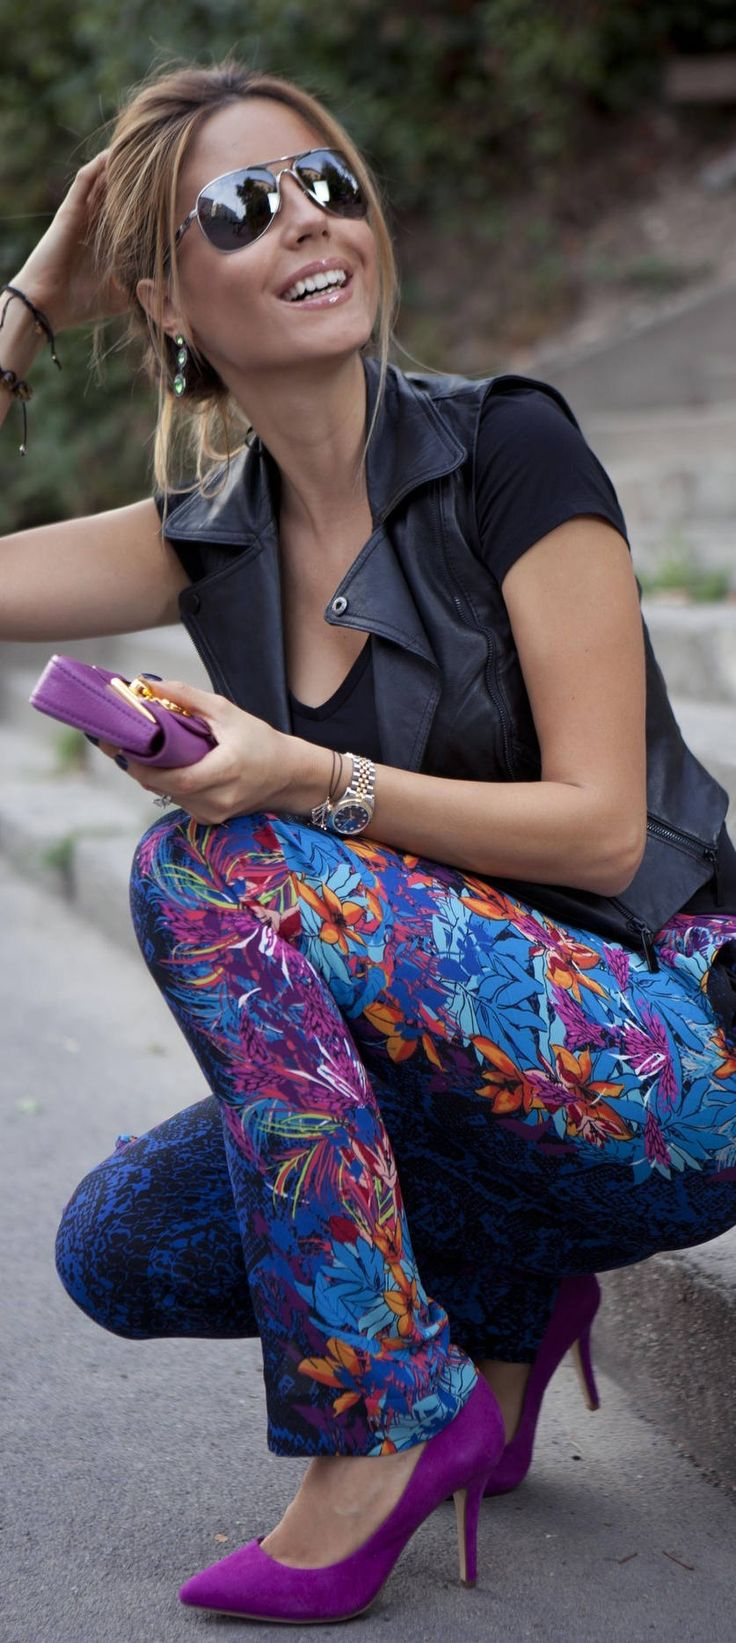 Toronto fashion week street style a purple haze - Find This Pin And More On My Style